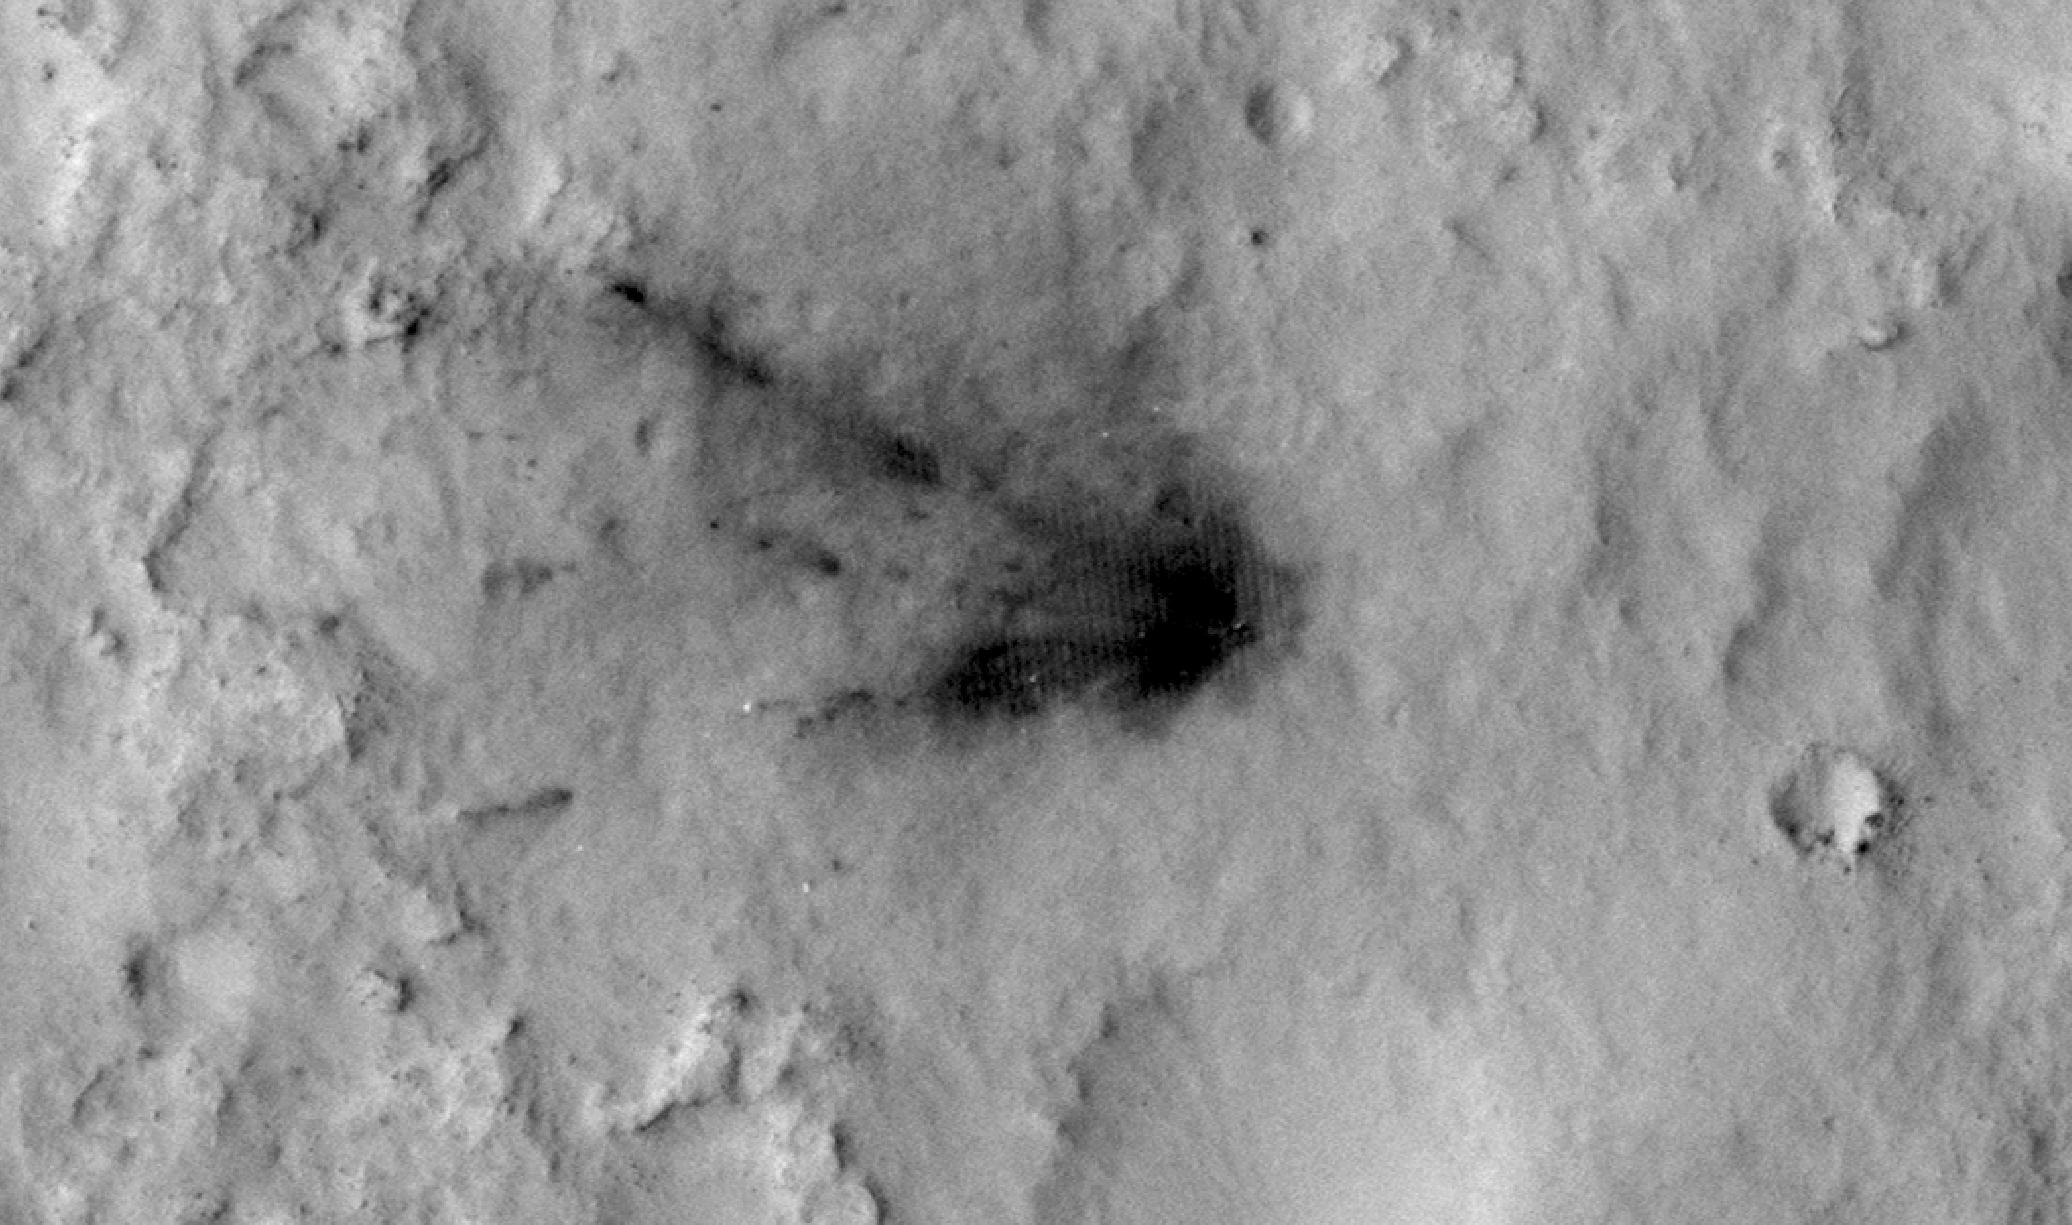 Space Images | Changes in Scars From 2012 Mars Landing